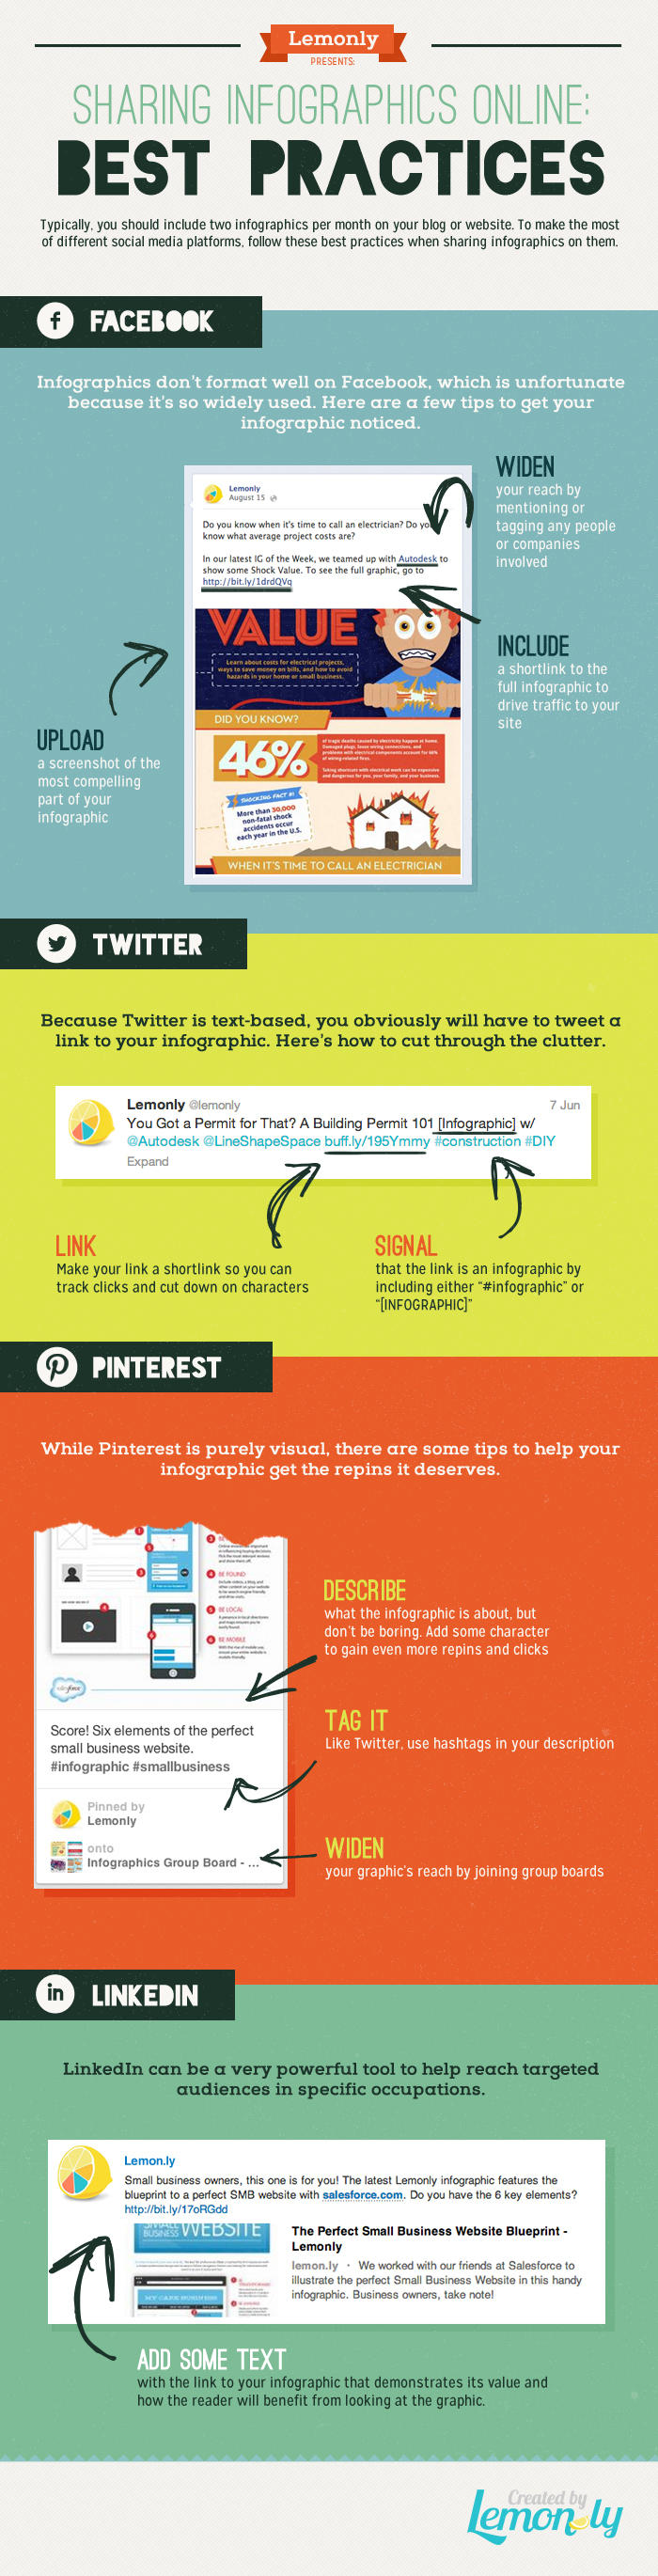 Social Media Best Practices for Sharing Infographics - Info graphic Design by Lemonly